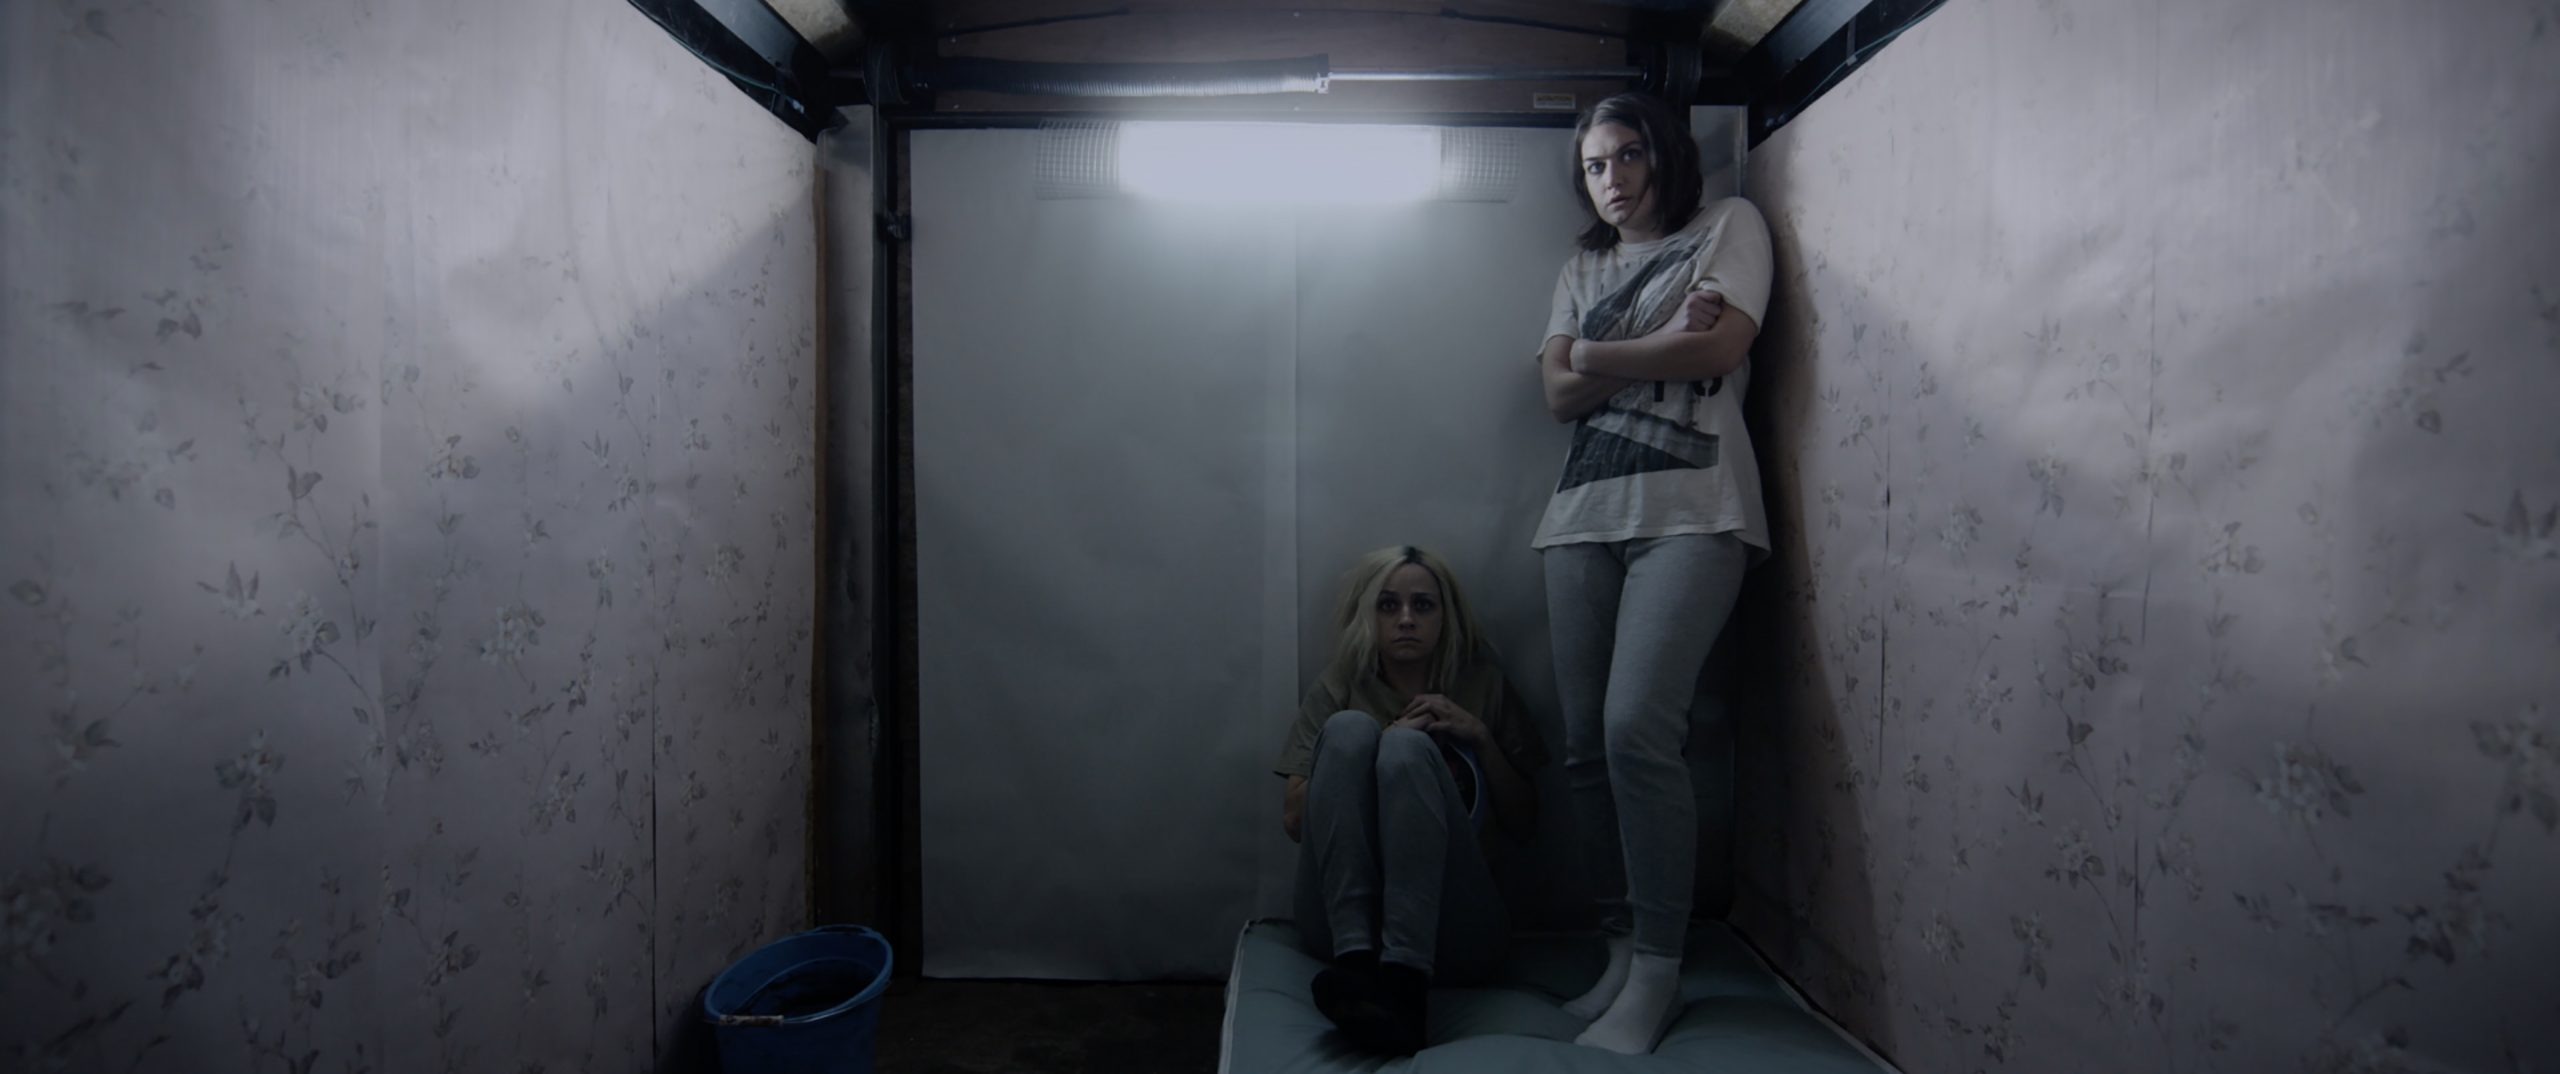 Abduction Thriller GOODBYE HONEY Follows a Night of Terror on VOD from Freestyle Digital Media (USA / 11 May)